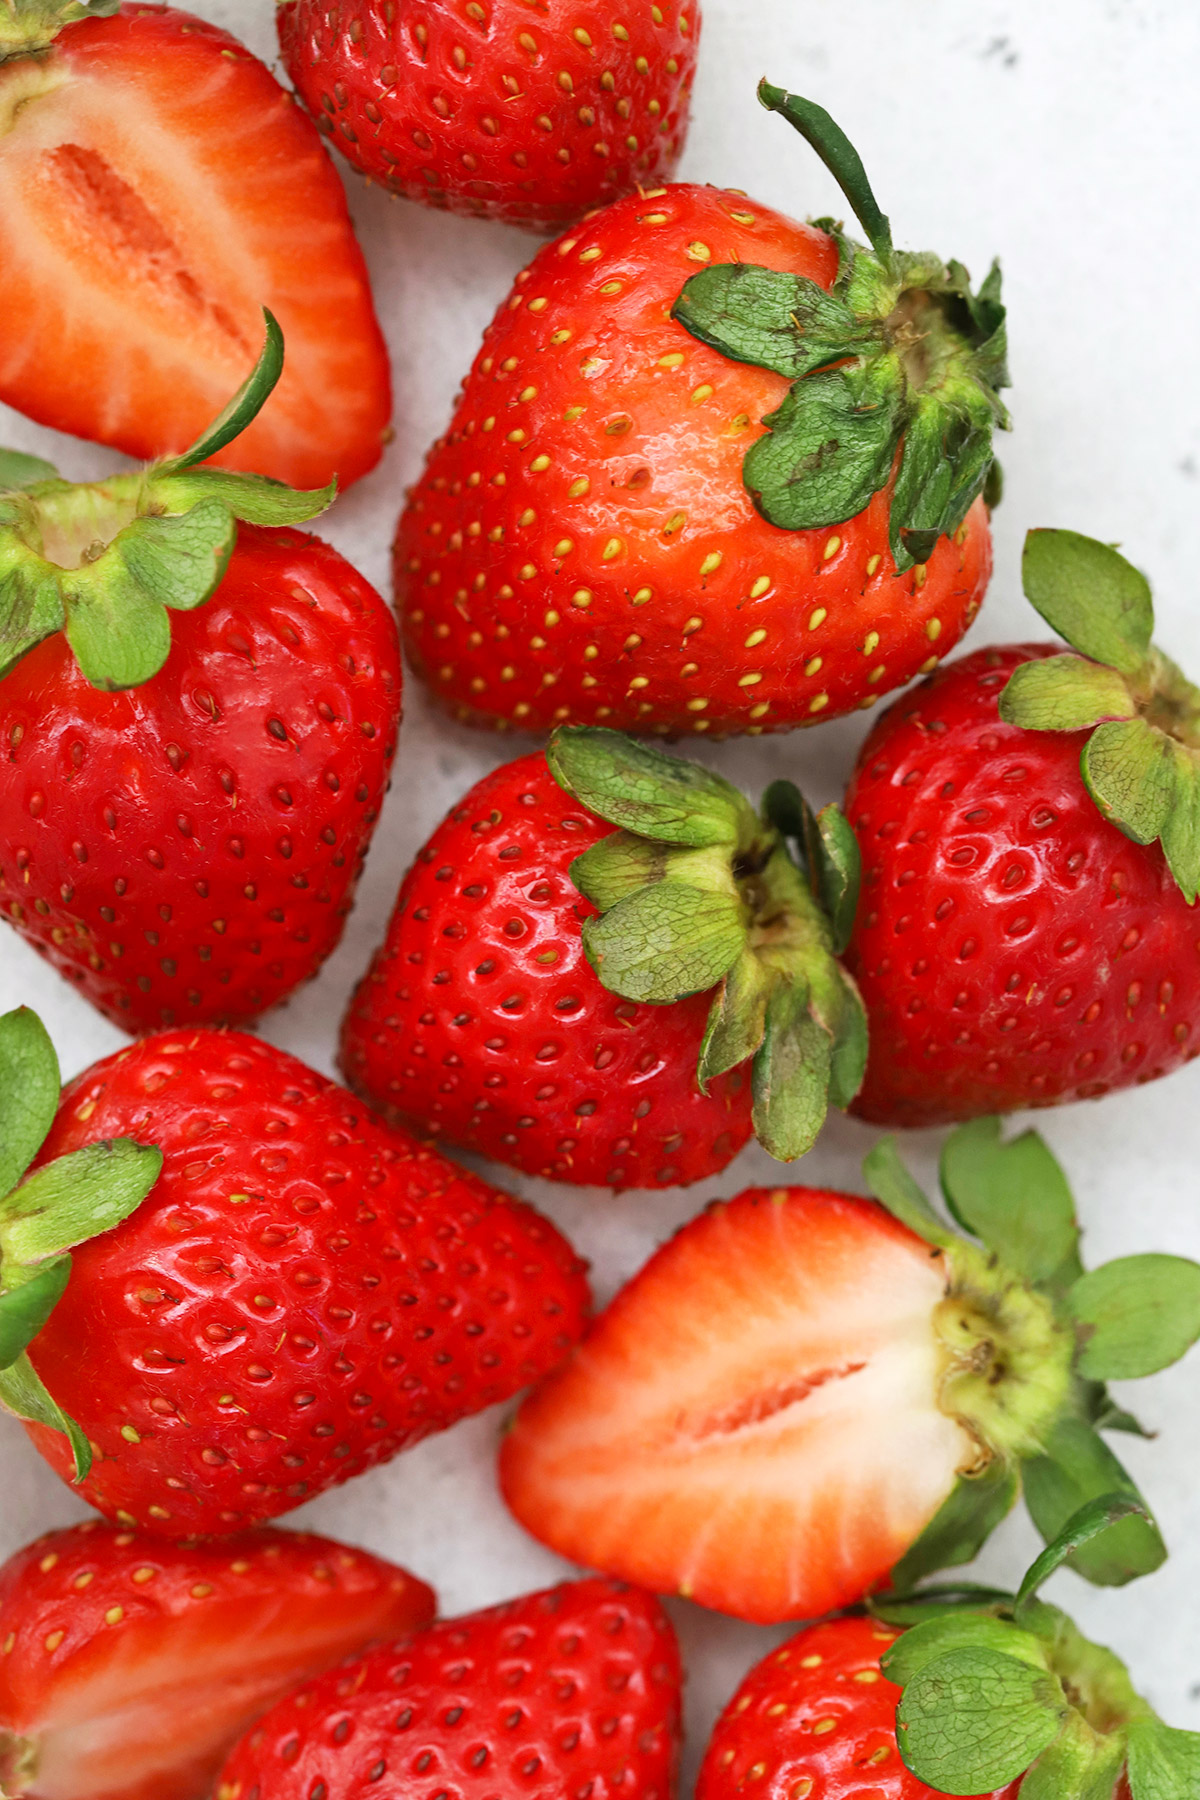 Close up view of fresh strawberries on a white background